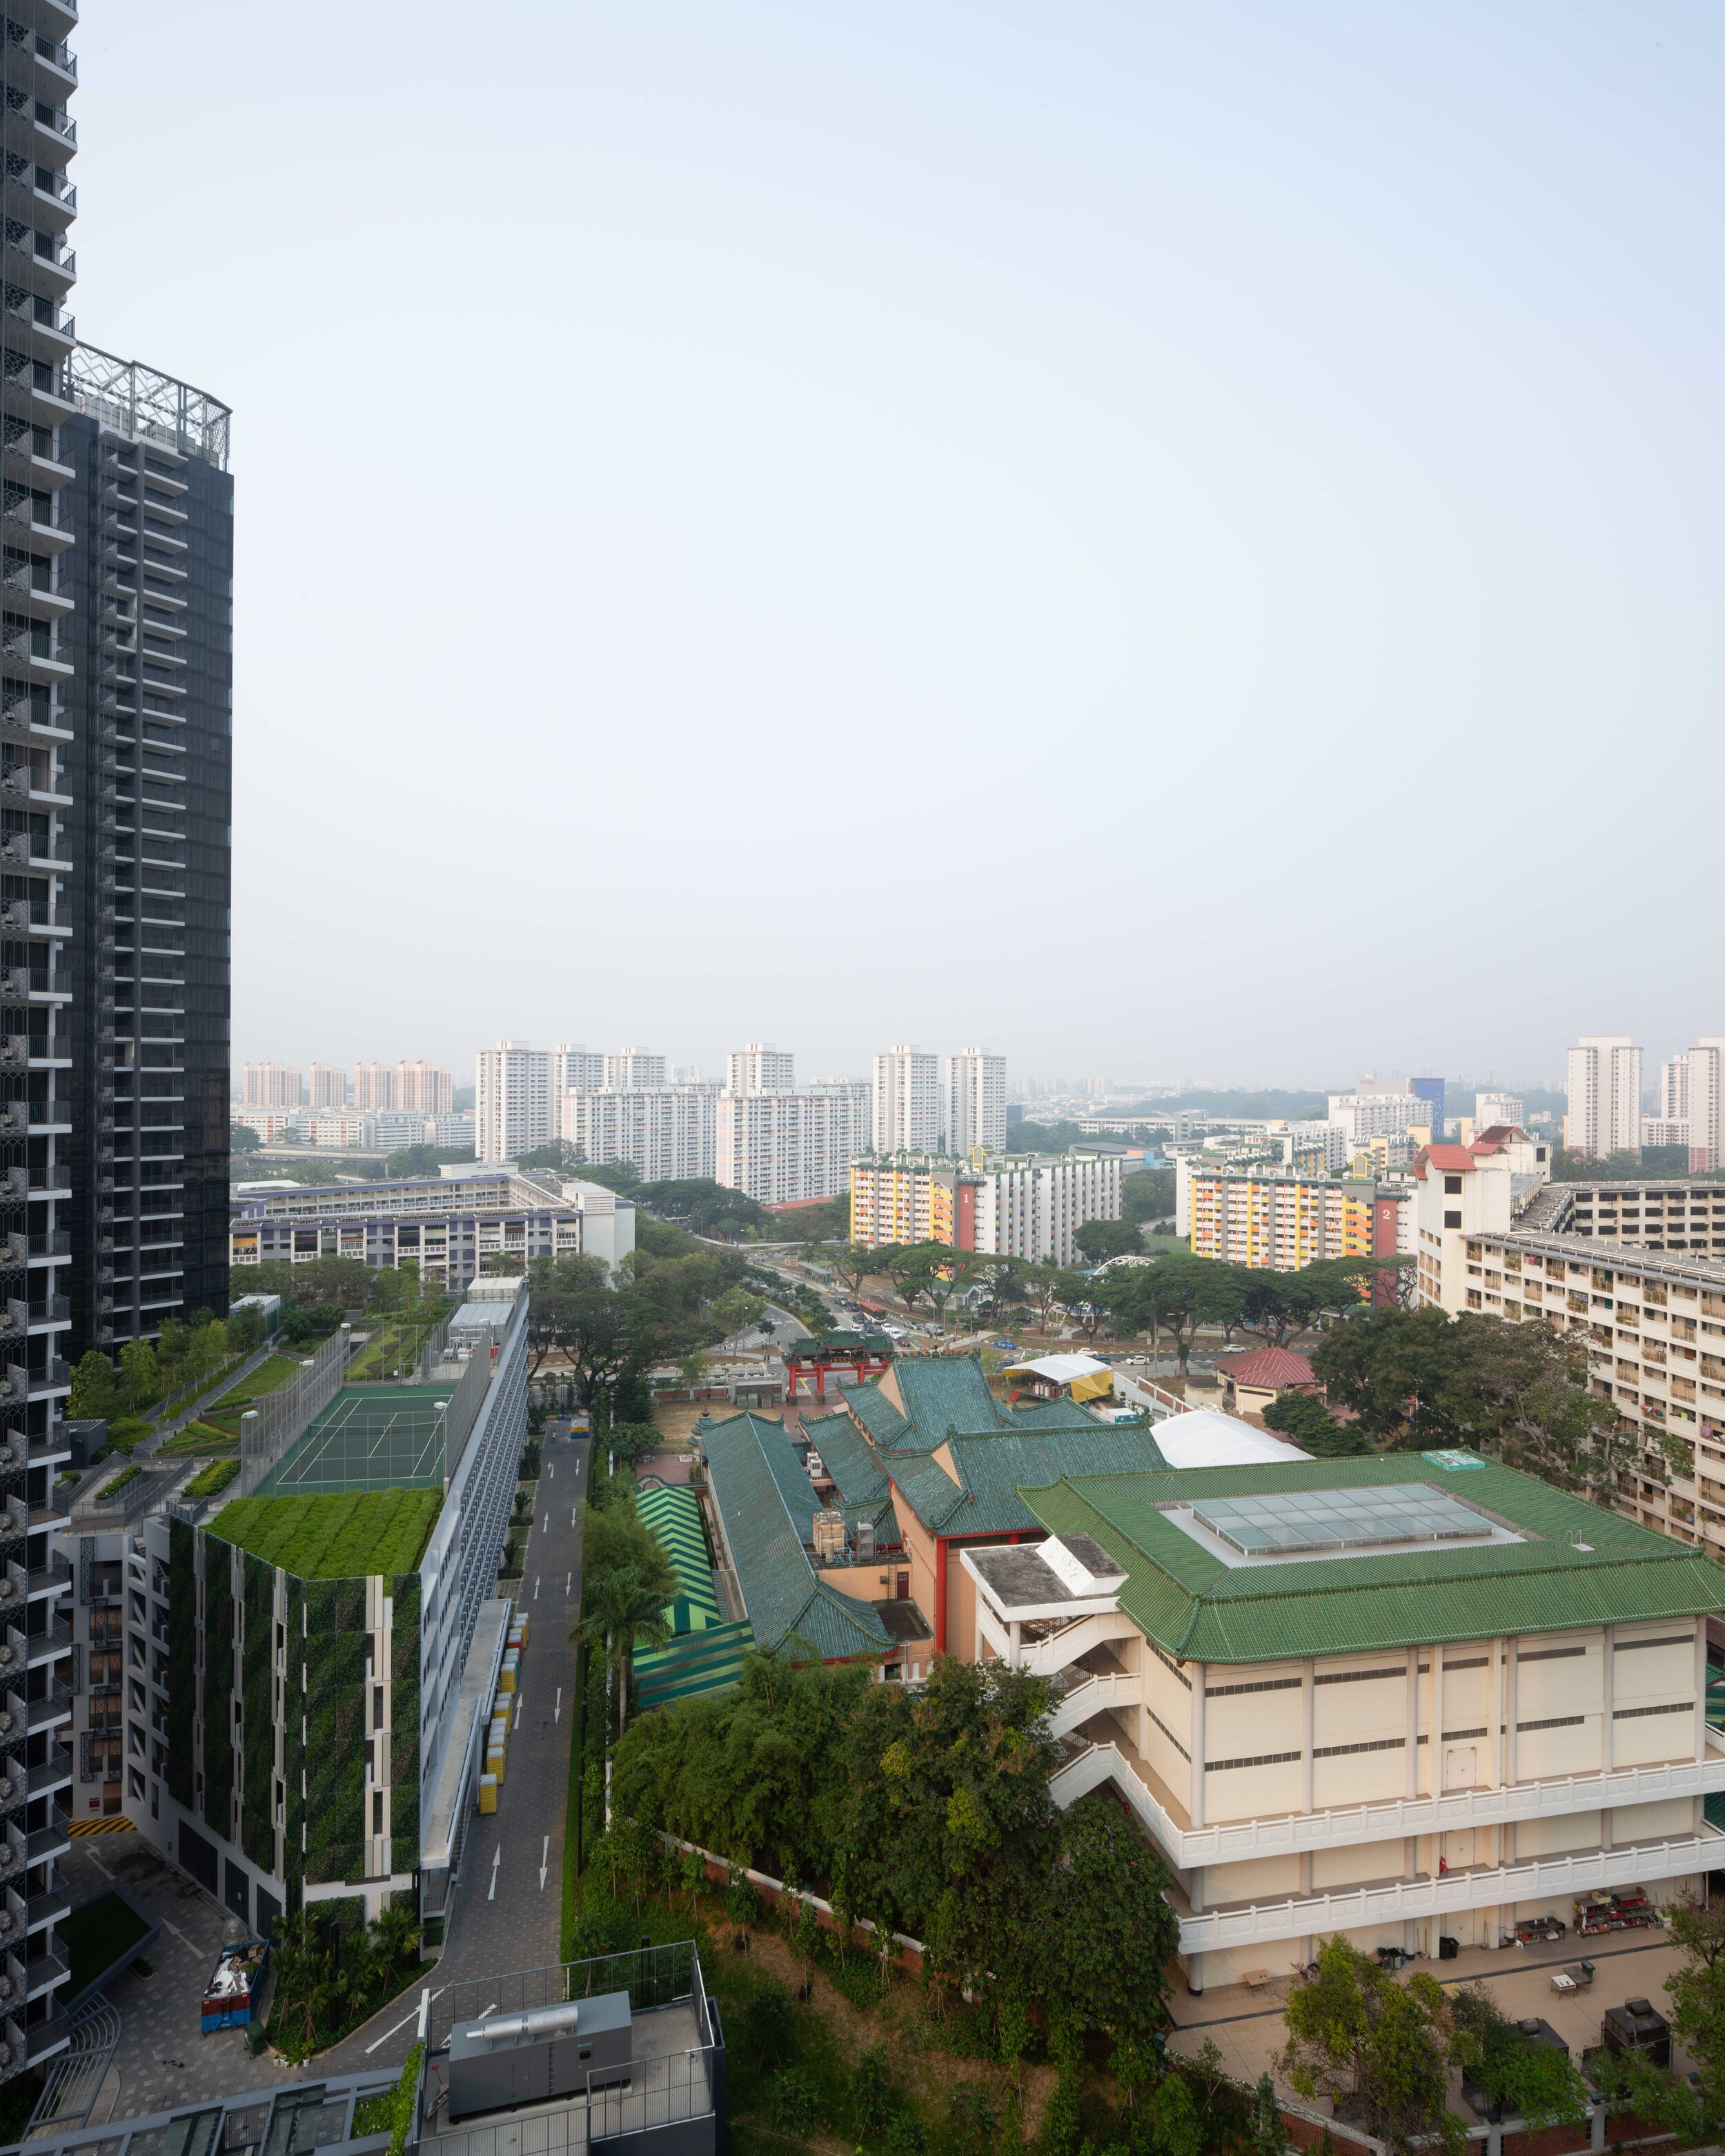 53 Lorong 5 Toa Payoh 190918 074, image by Andrew Campbell Nelson.jpg